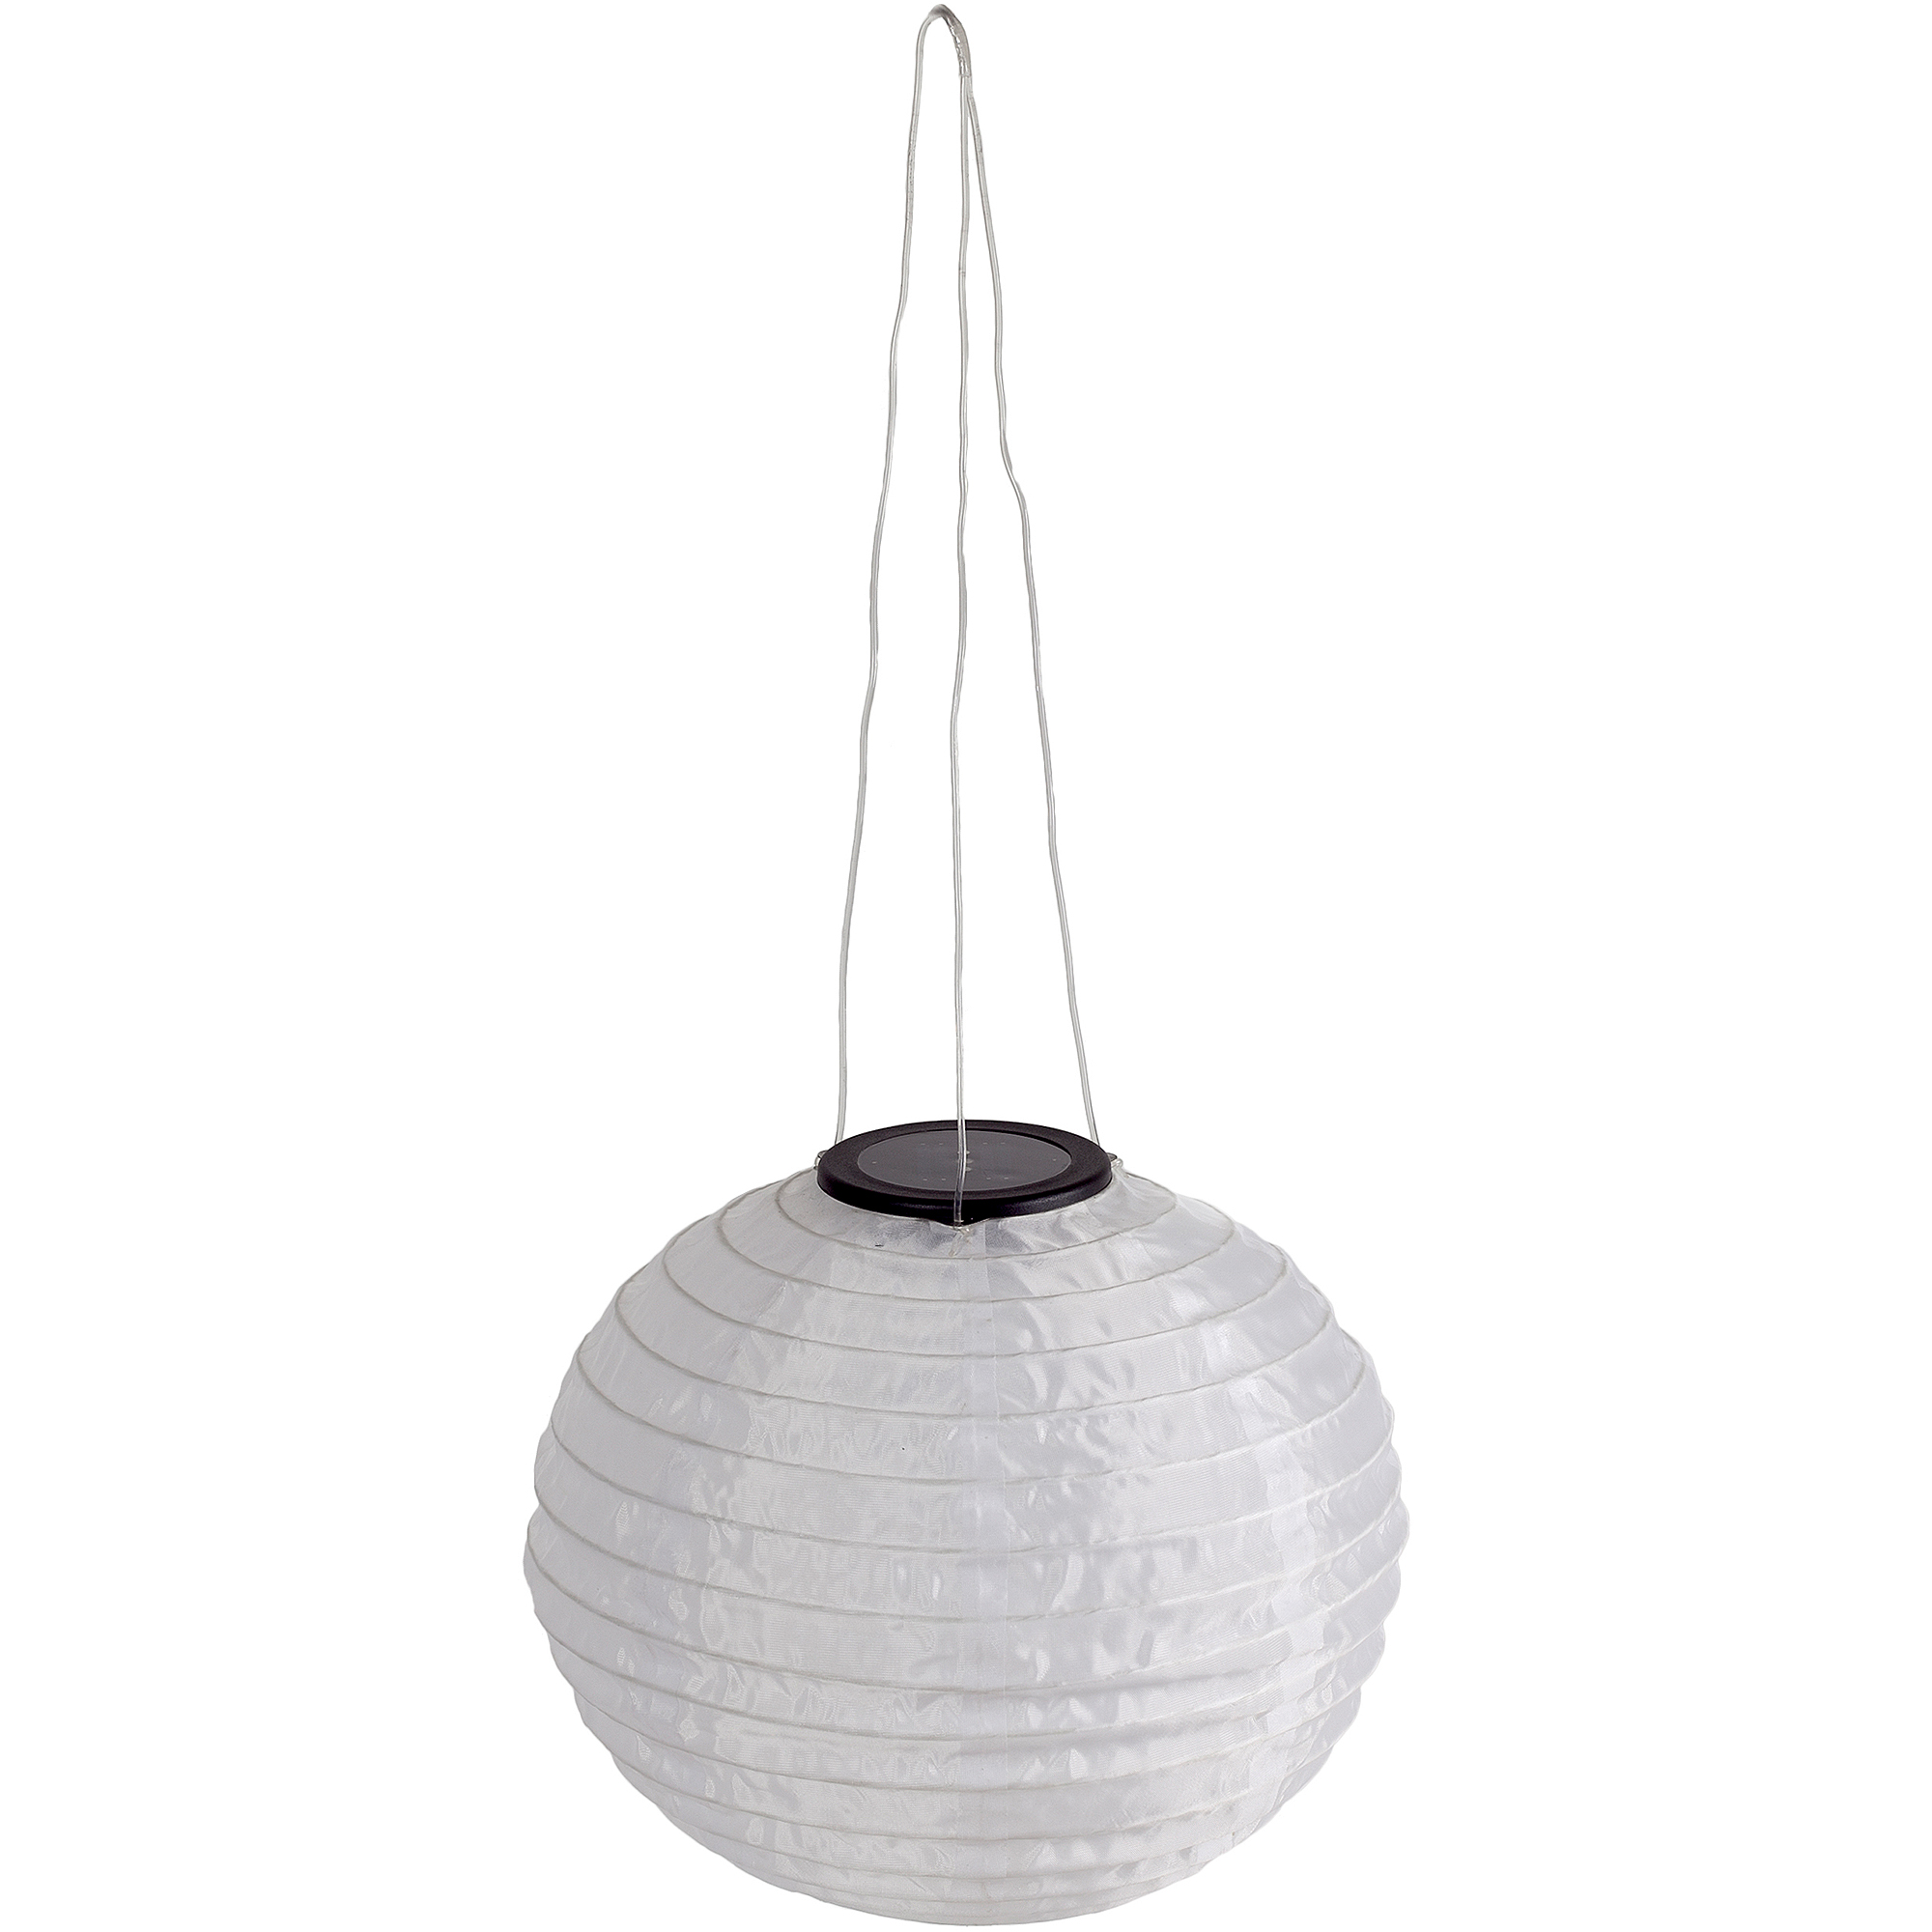 Solar White Fabric Hanging Lantern, 2x Brighter